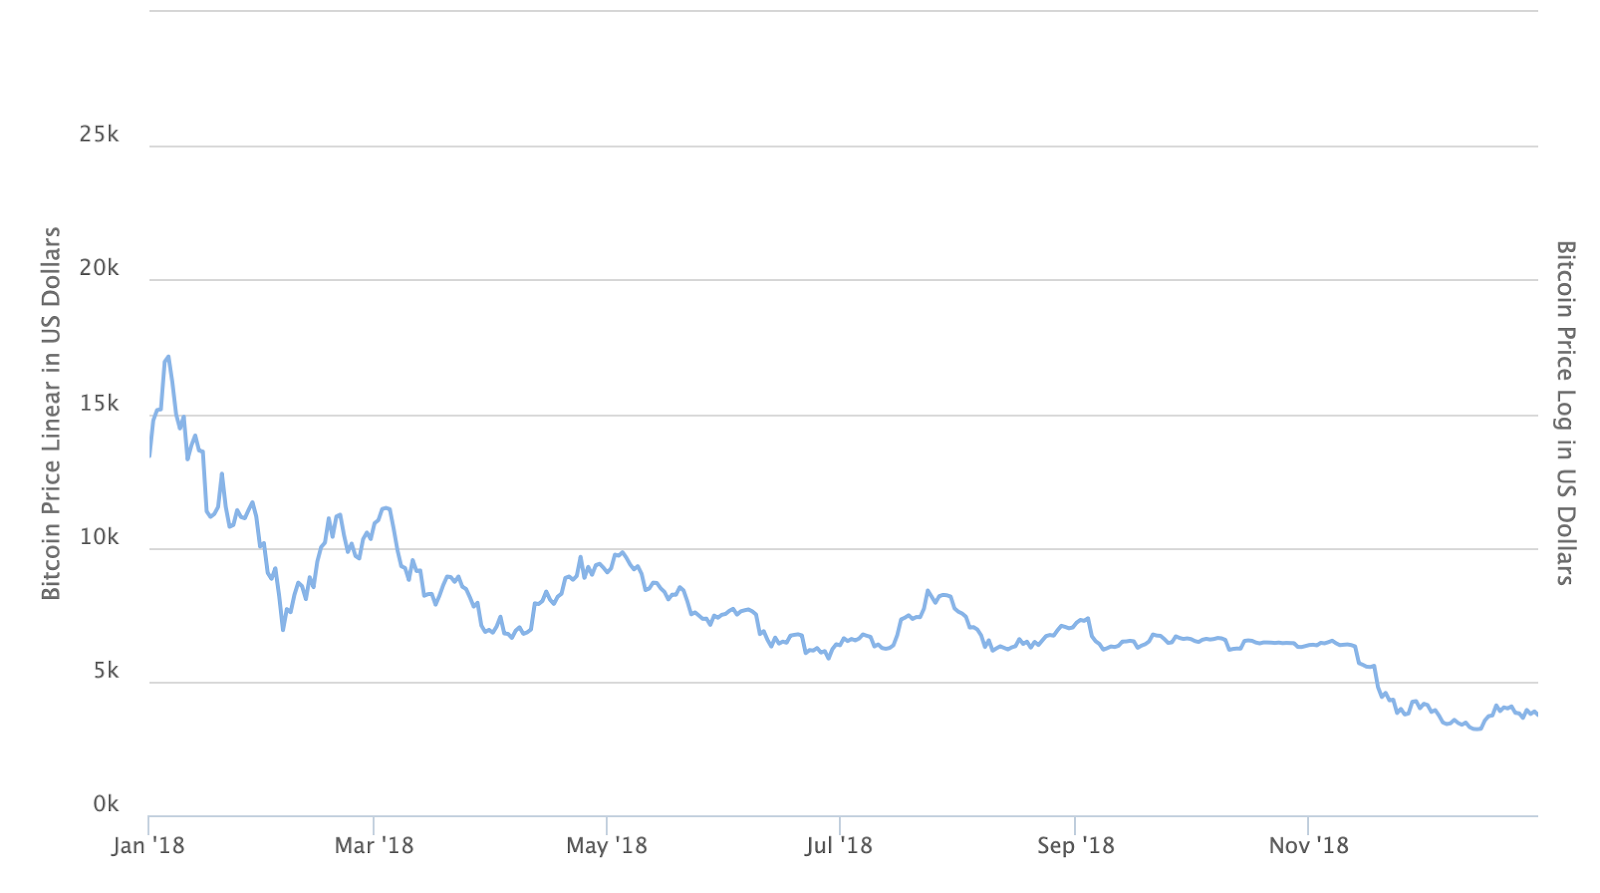 Bitcoin price in 2018